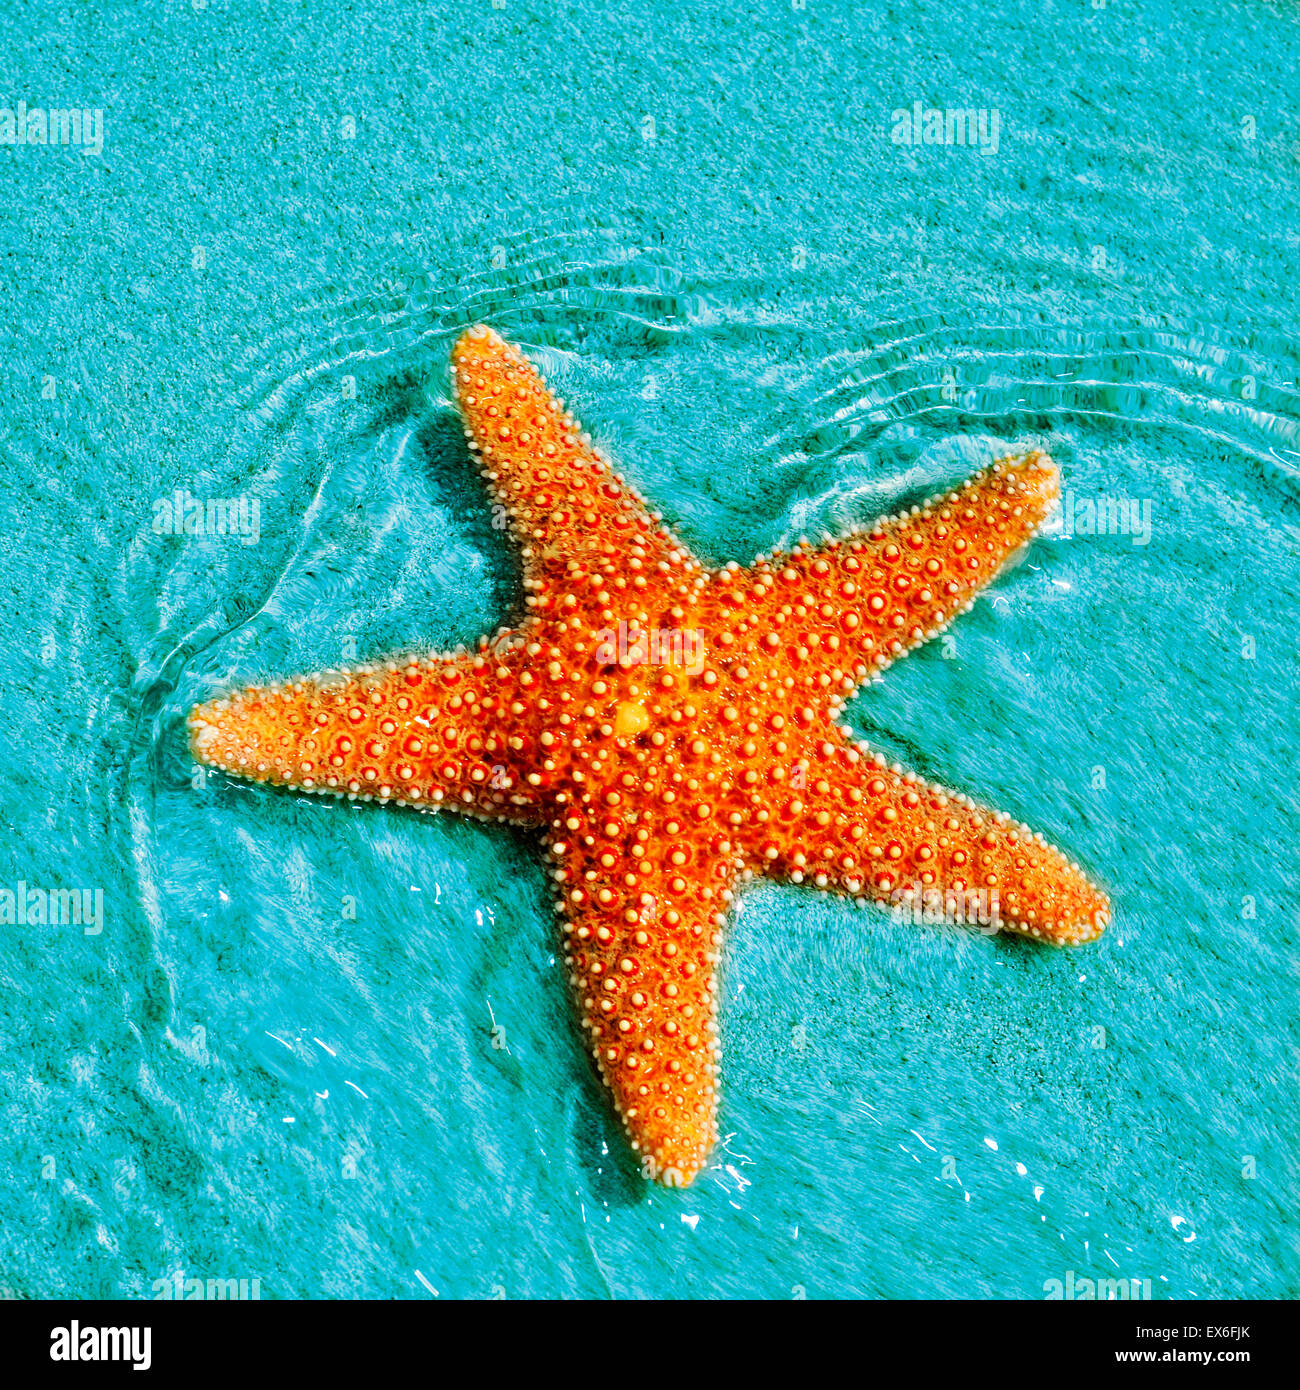 closeup of a seastar in a tropical beach - Stock Image